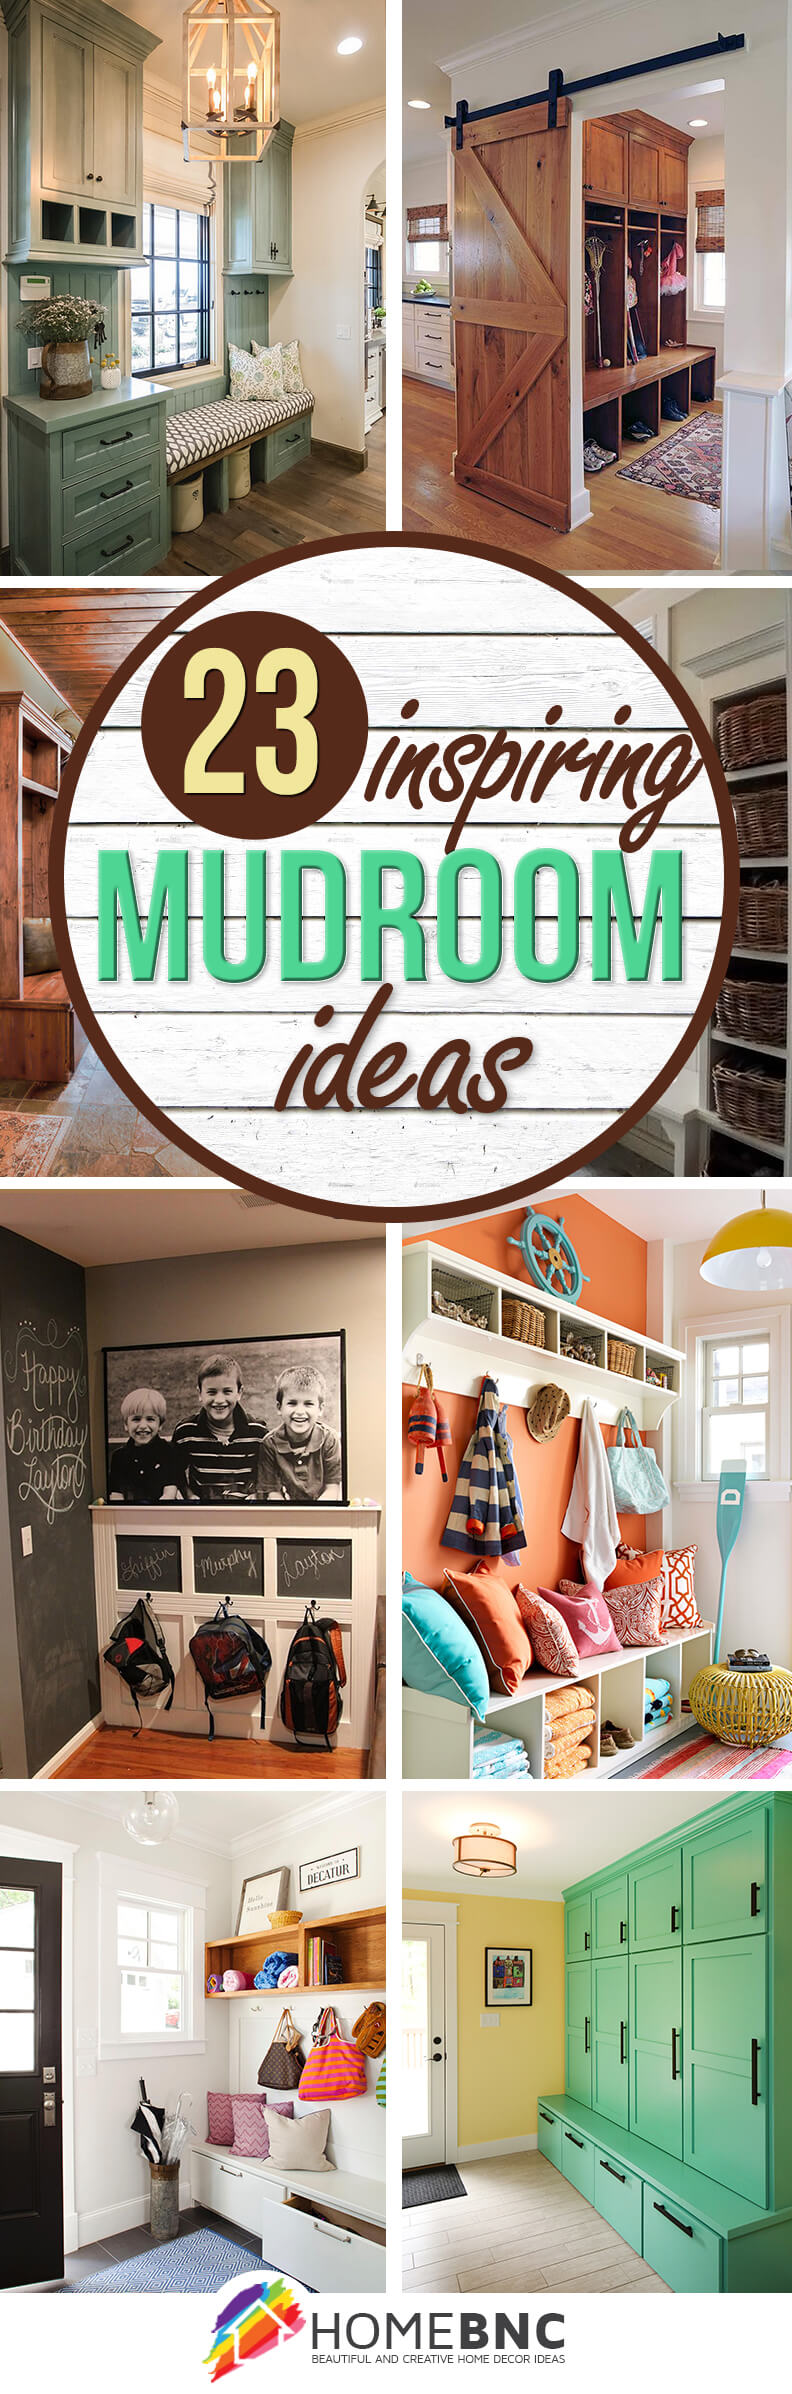 23 Best Mudroom Ideas (Designs and Decorations) for 2019